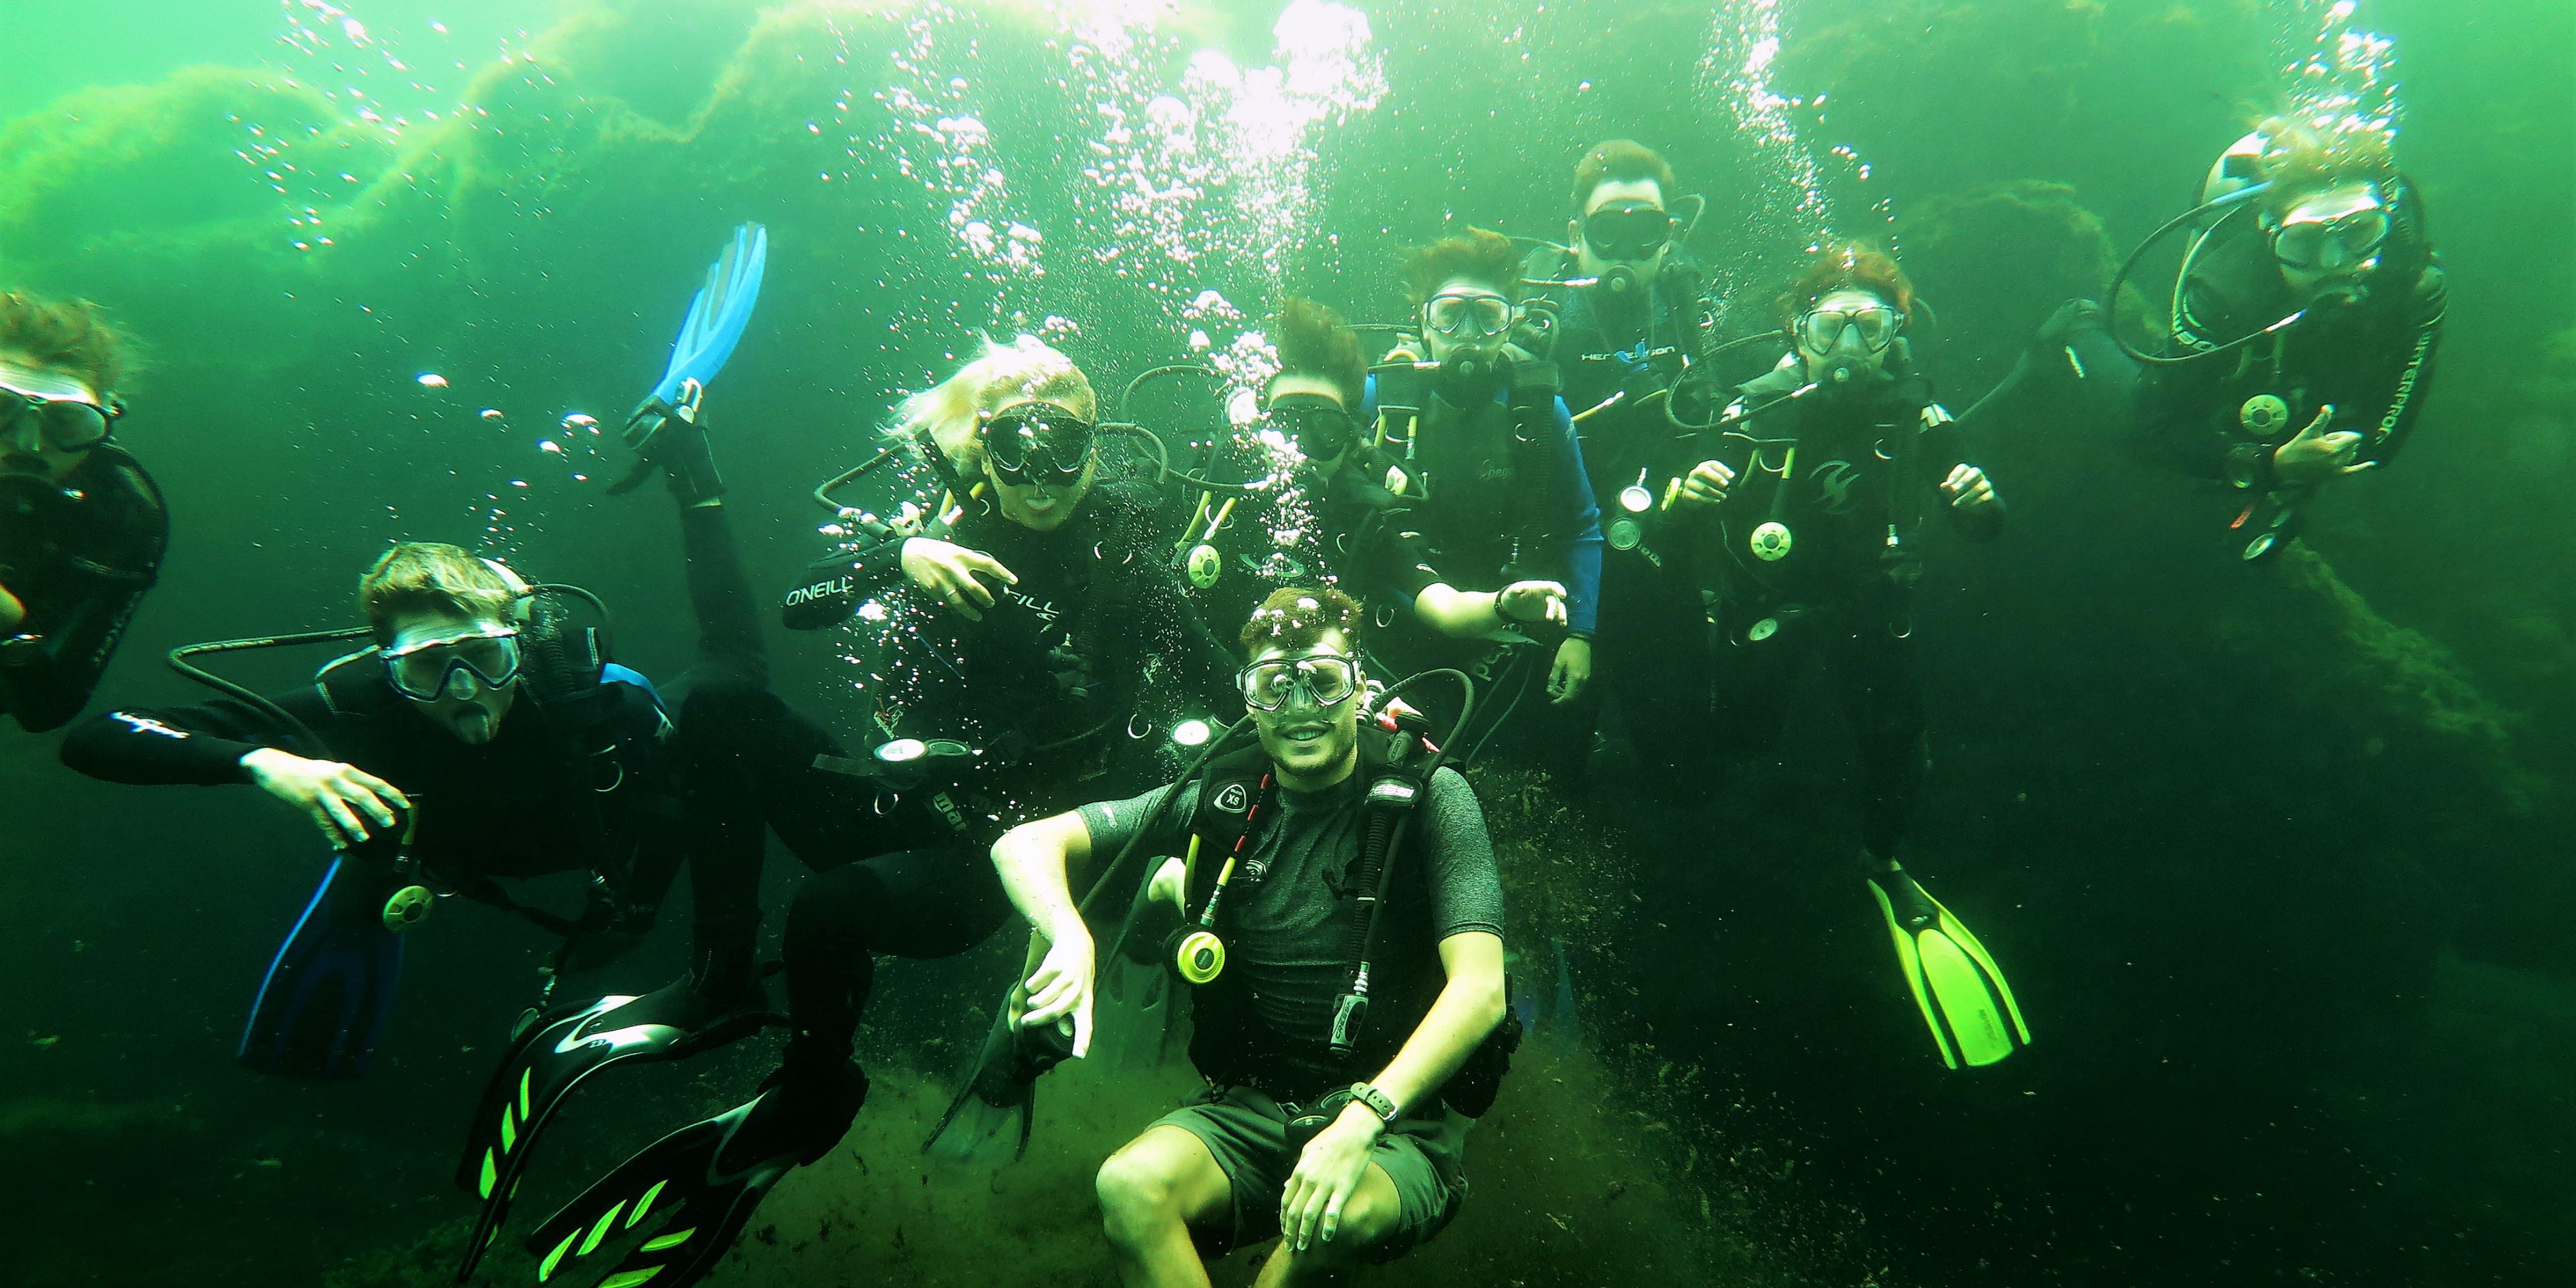 GVI participants complete mandatory dives as part of their PADI diving qualification, while working on marine conservation in Mexico.